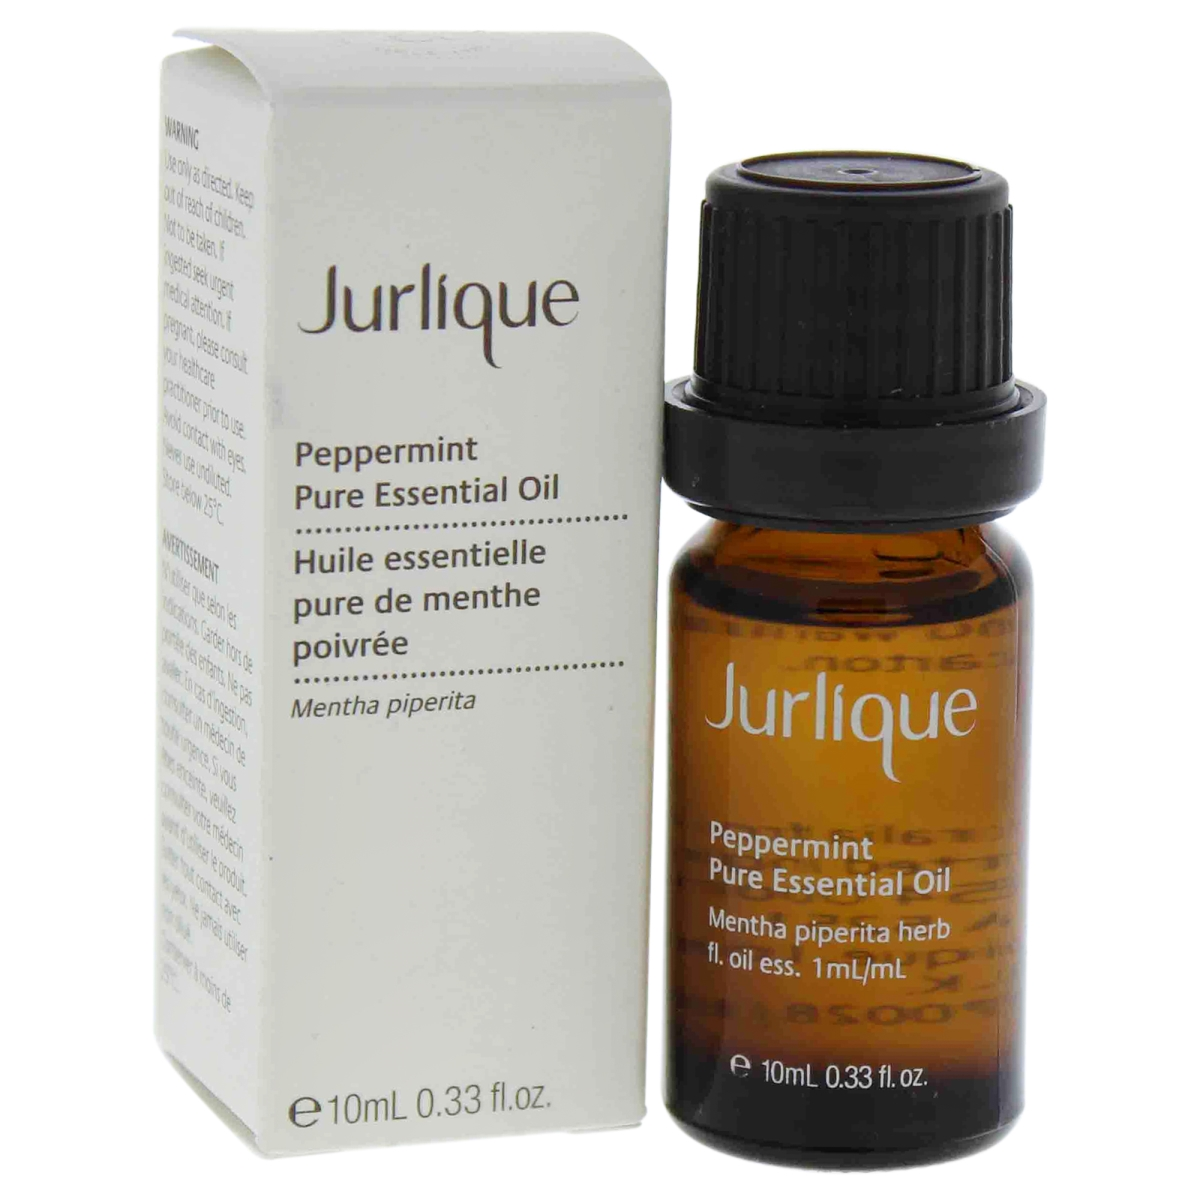 Jurlique U-SC-4754 0.33 oz Peppermint Pure Essential Oil for Unisex